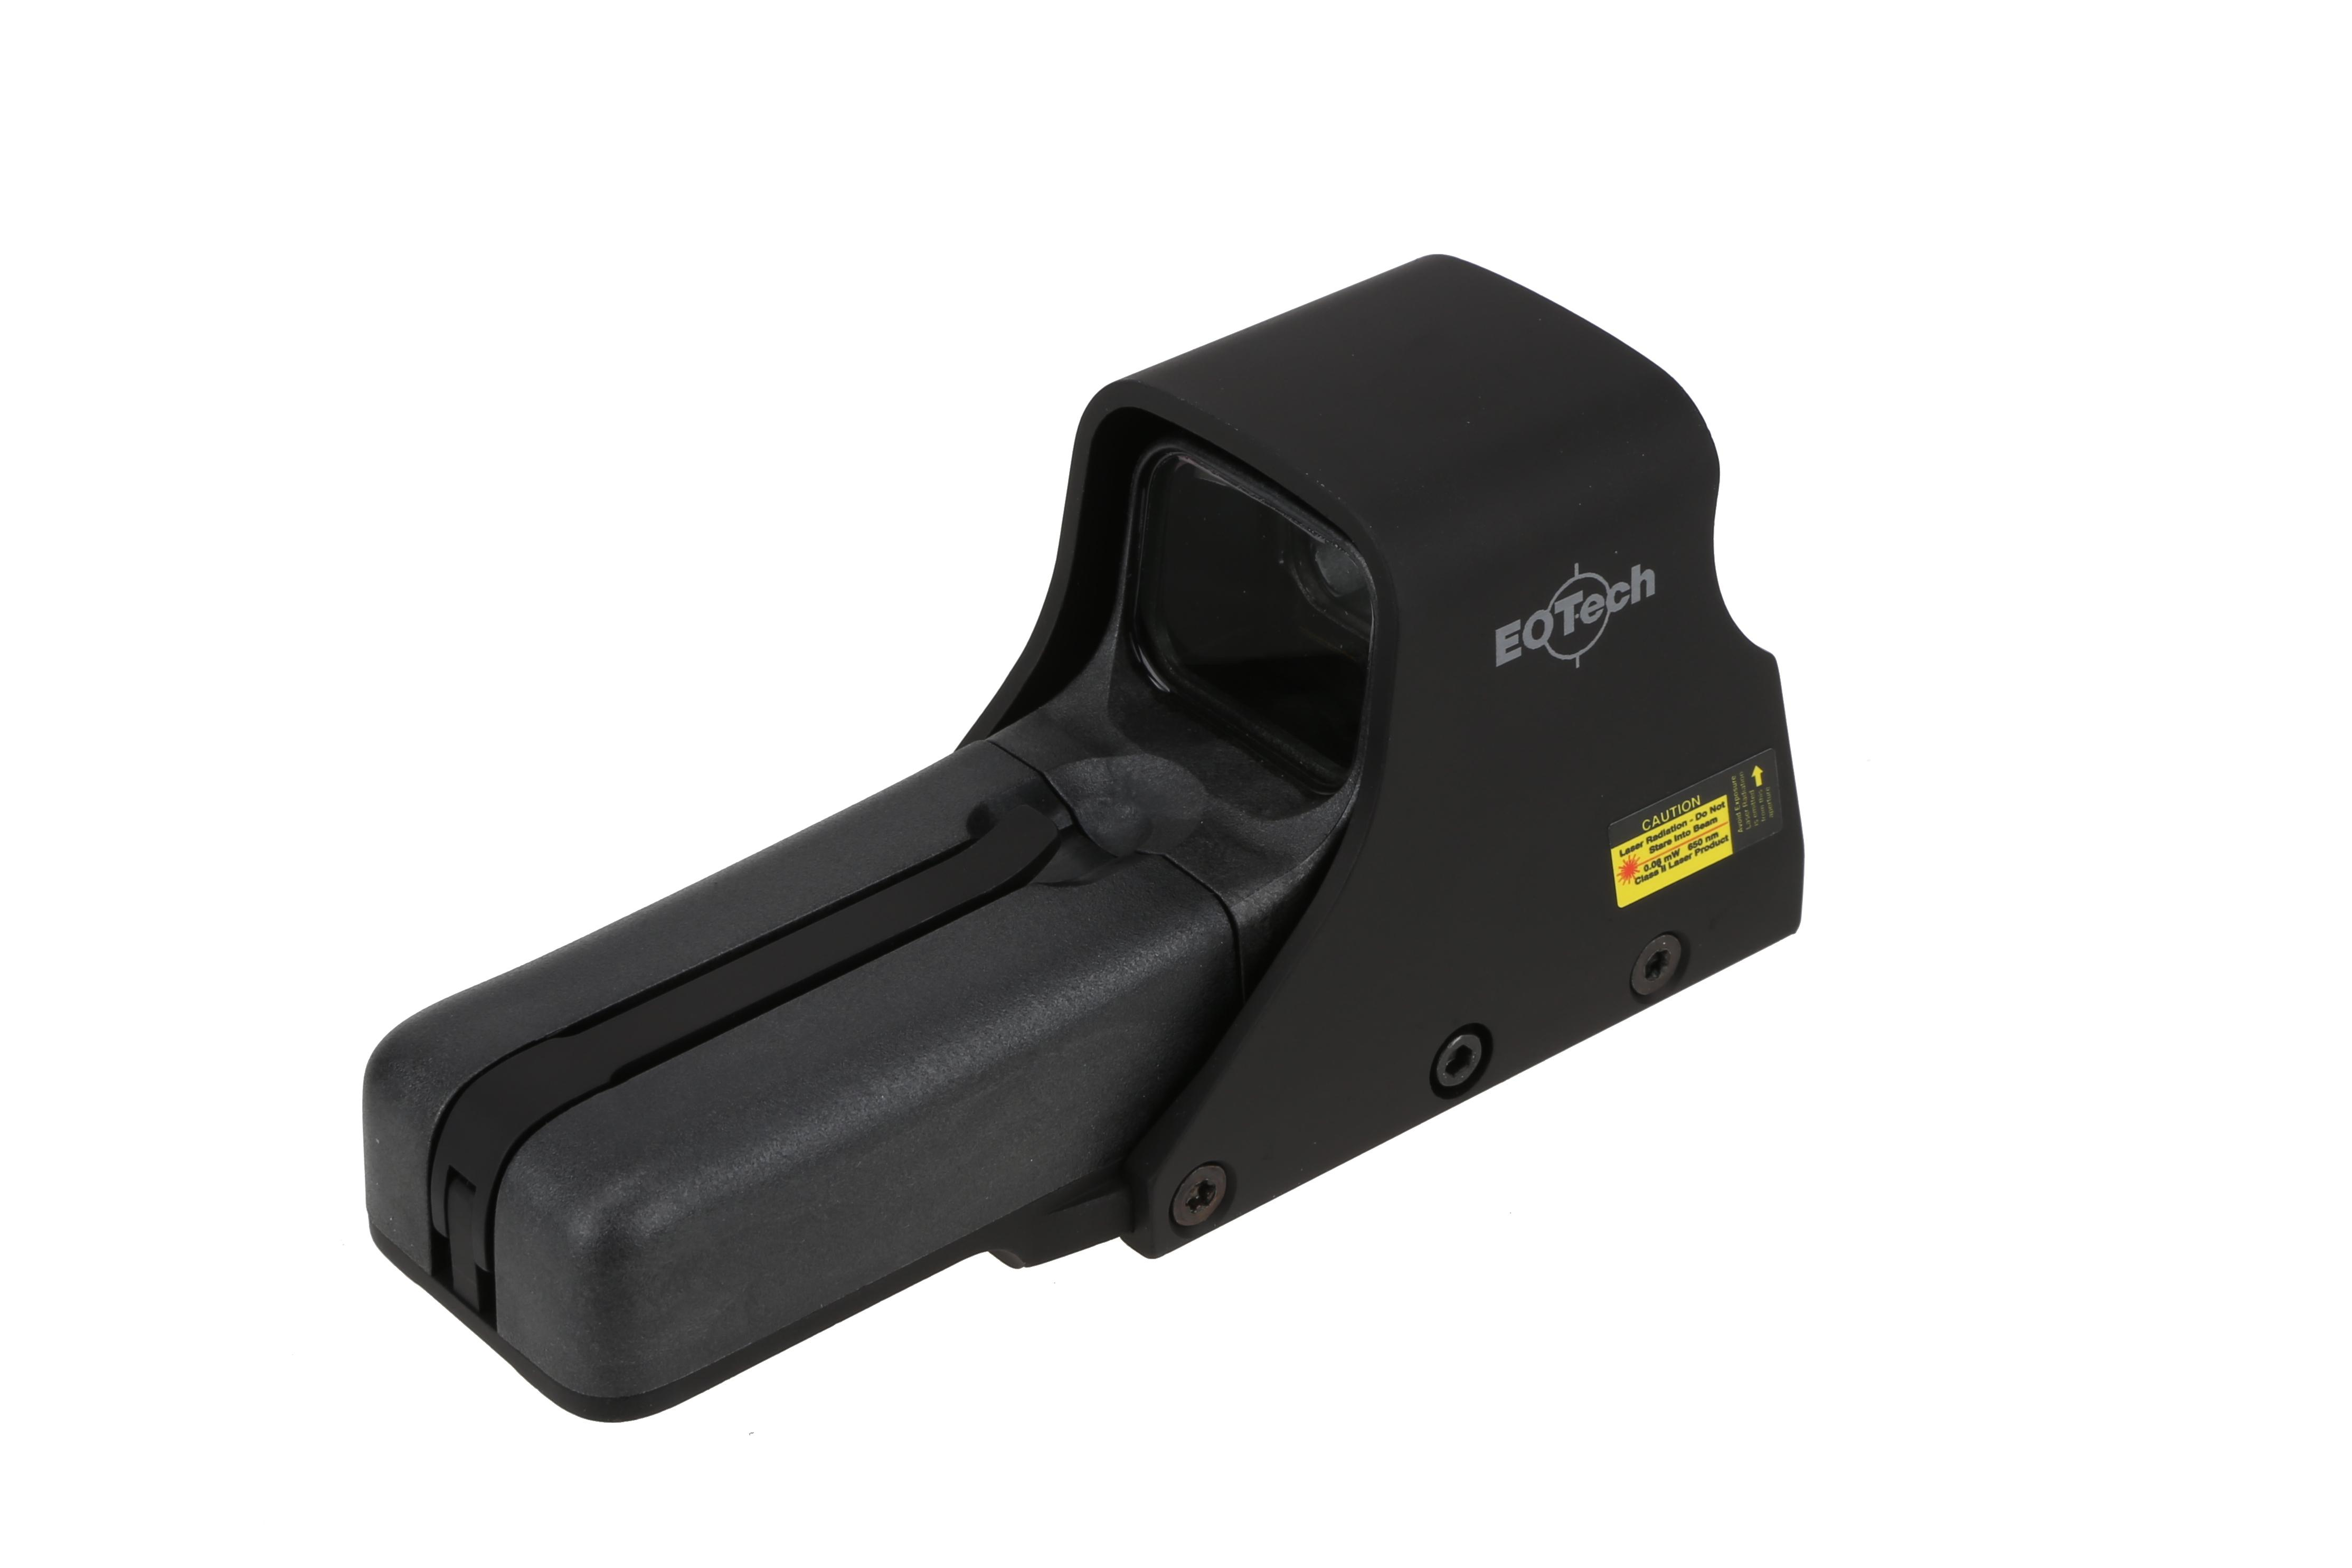 EOTech AA battery 68 MOA ring and 1 MOA dot reticle with LBC accessory included